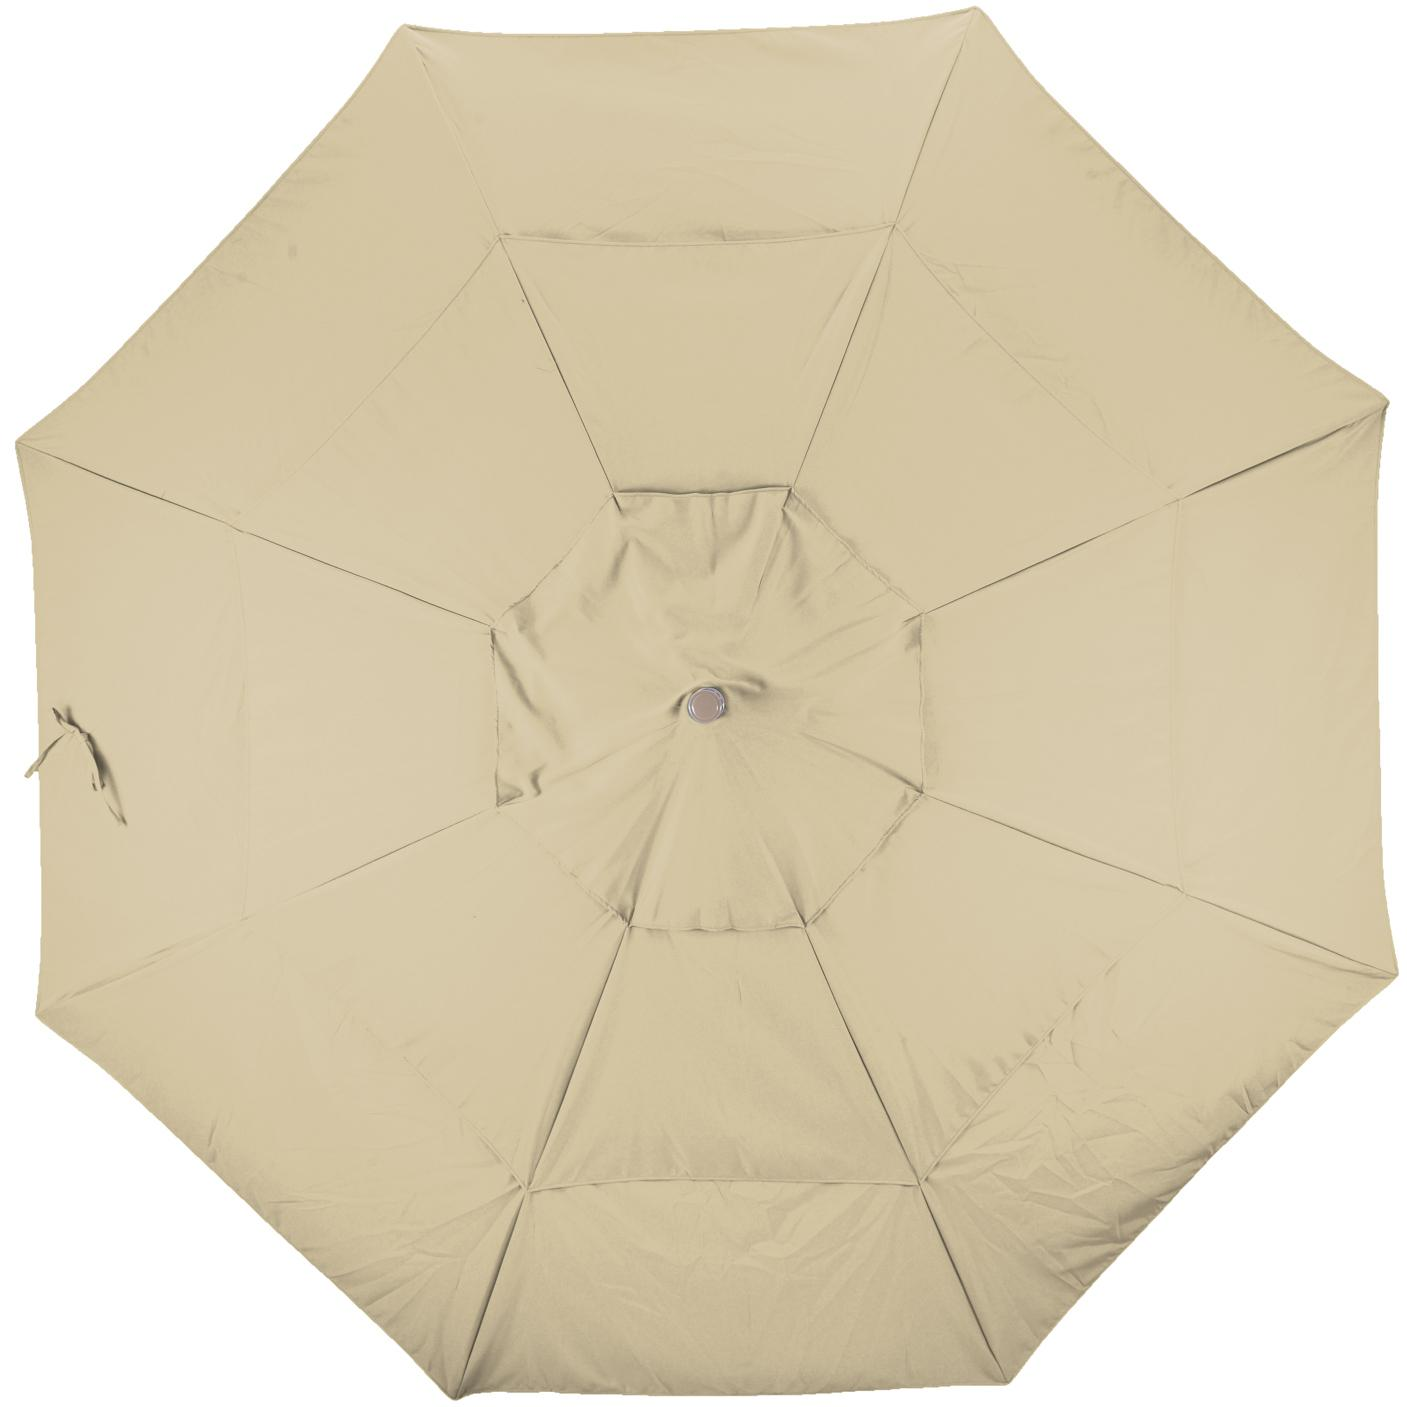 California Umbrella Sunbrella A Fabric In Antique Beige 2909420